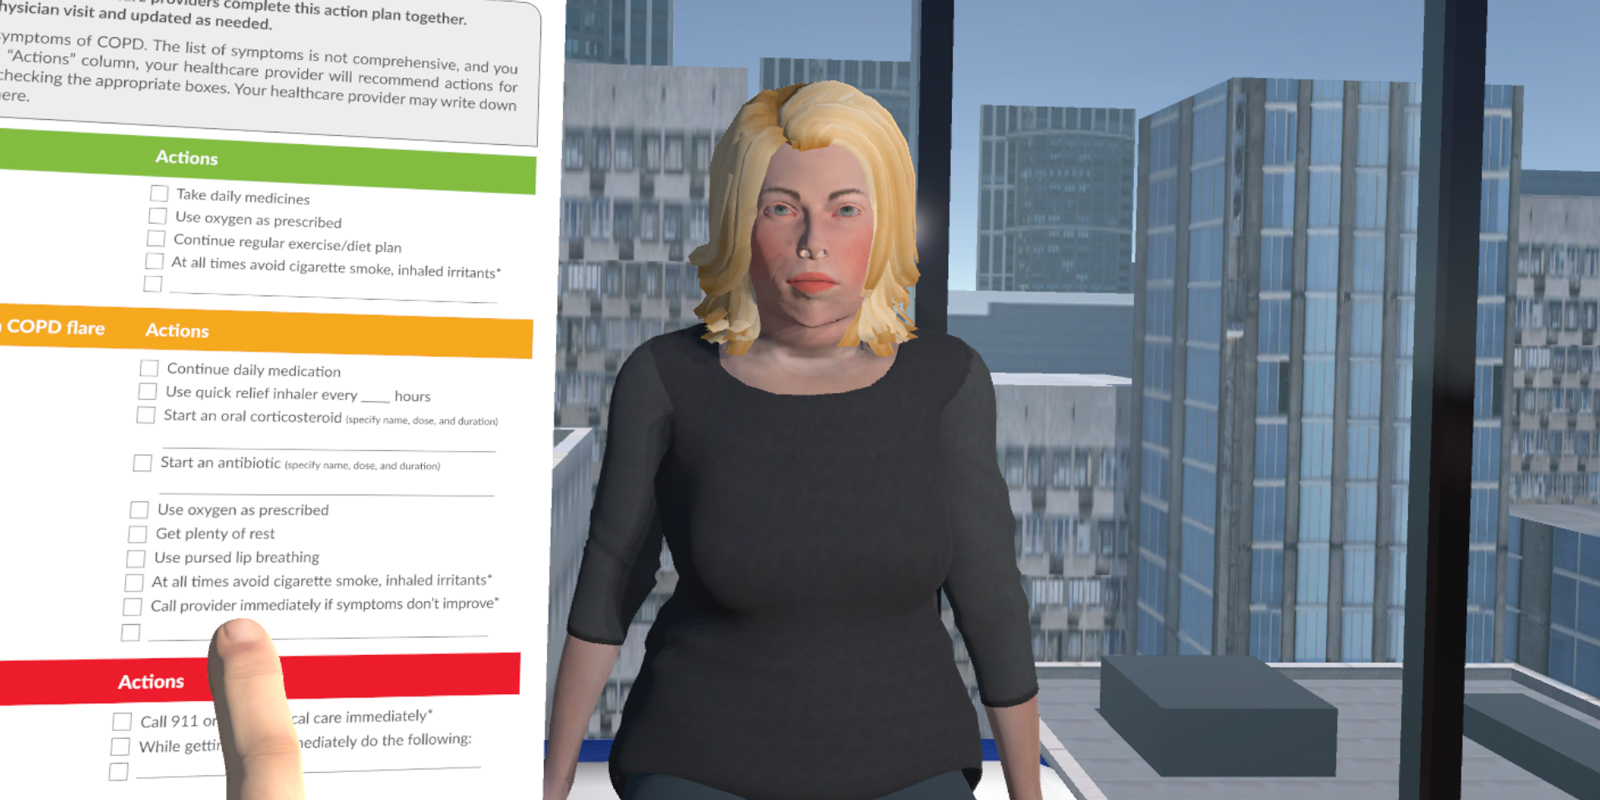 The CSUSB xREAL used artificial intelligence to animate avatars for an experience that allows nursing students to practice interacting with patients.